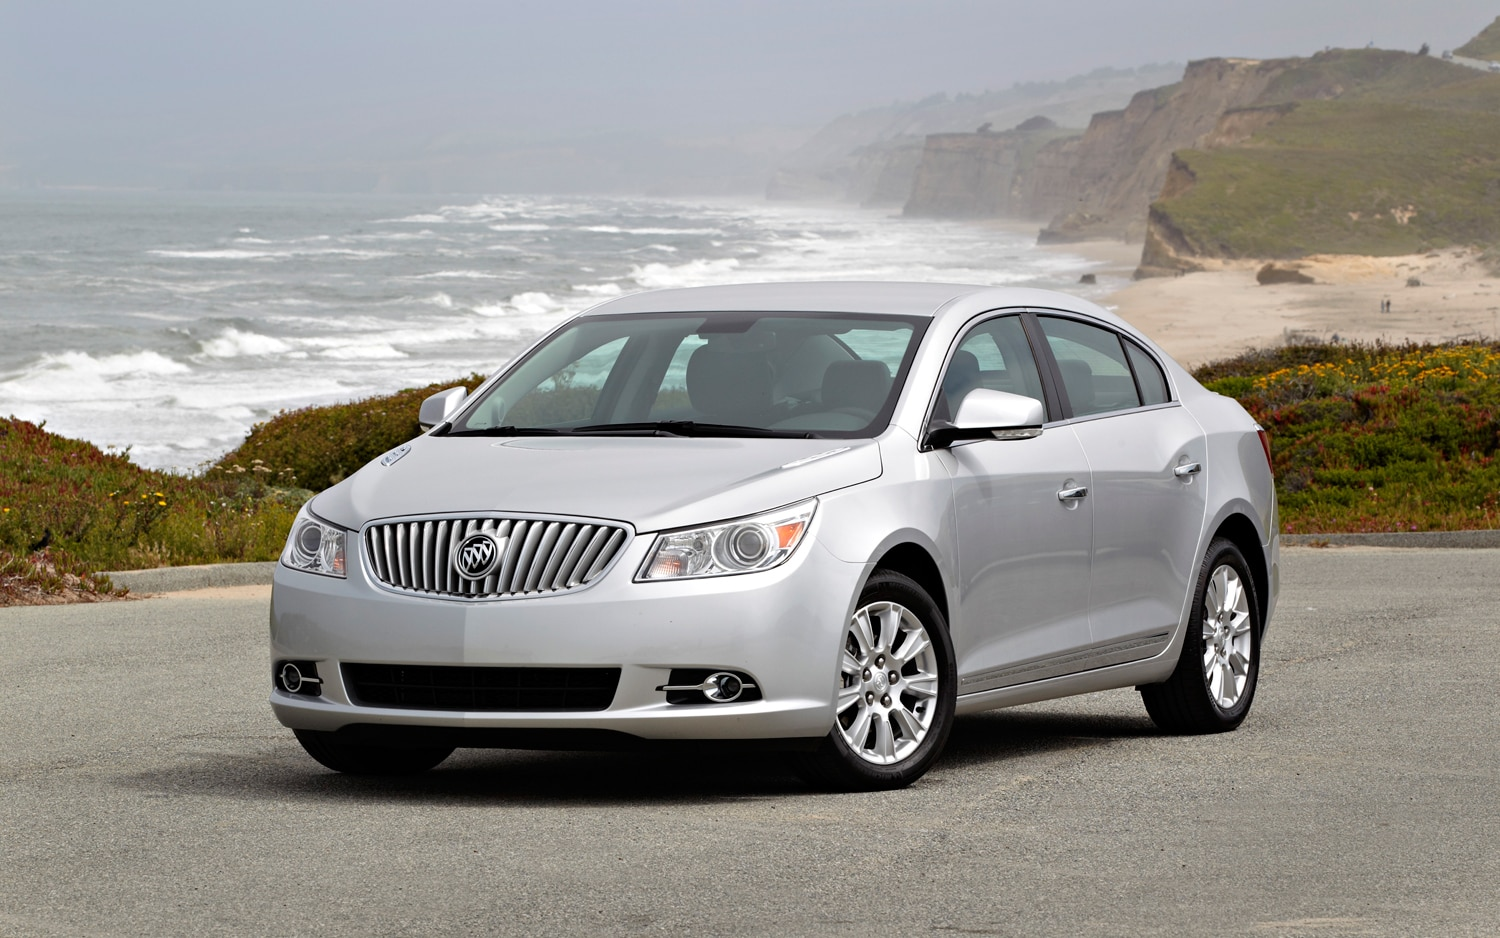 2012 Buick LaCrosse Premium I Group Front Left View1